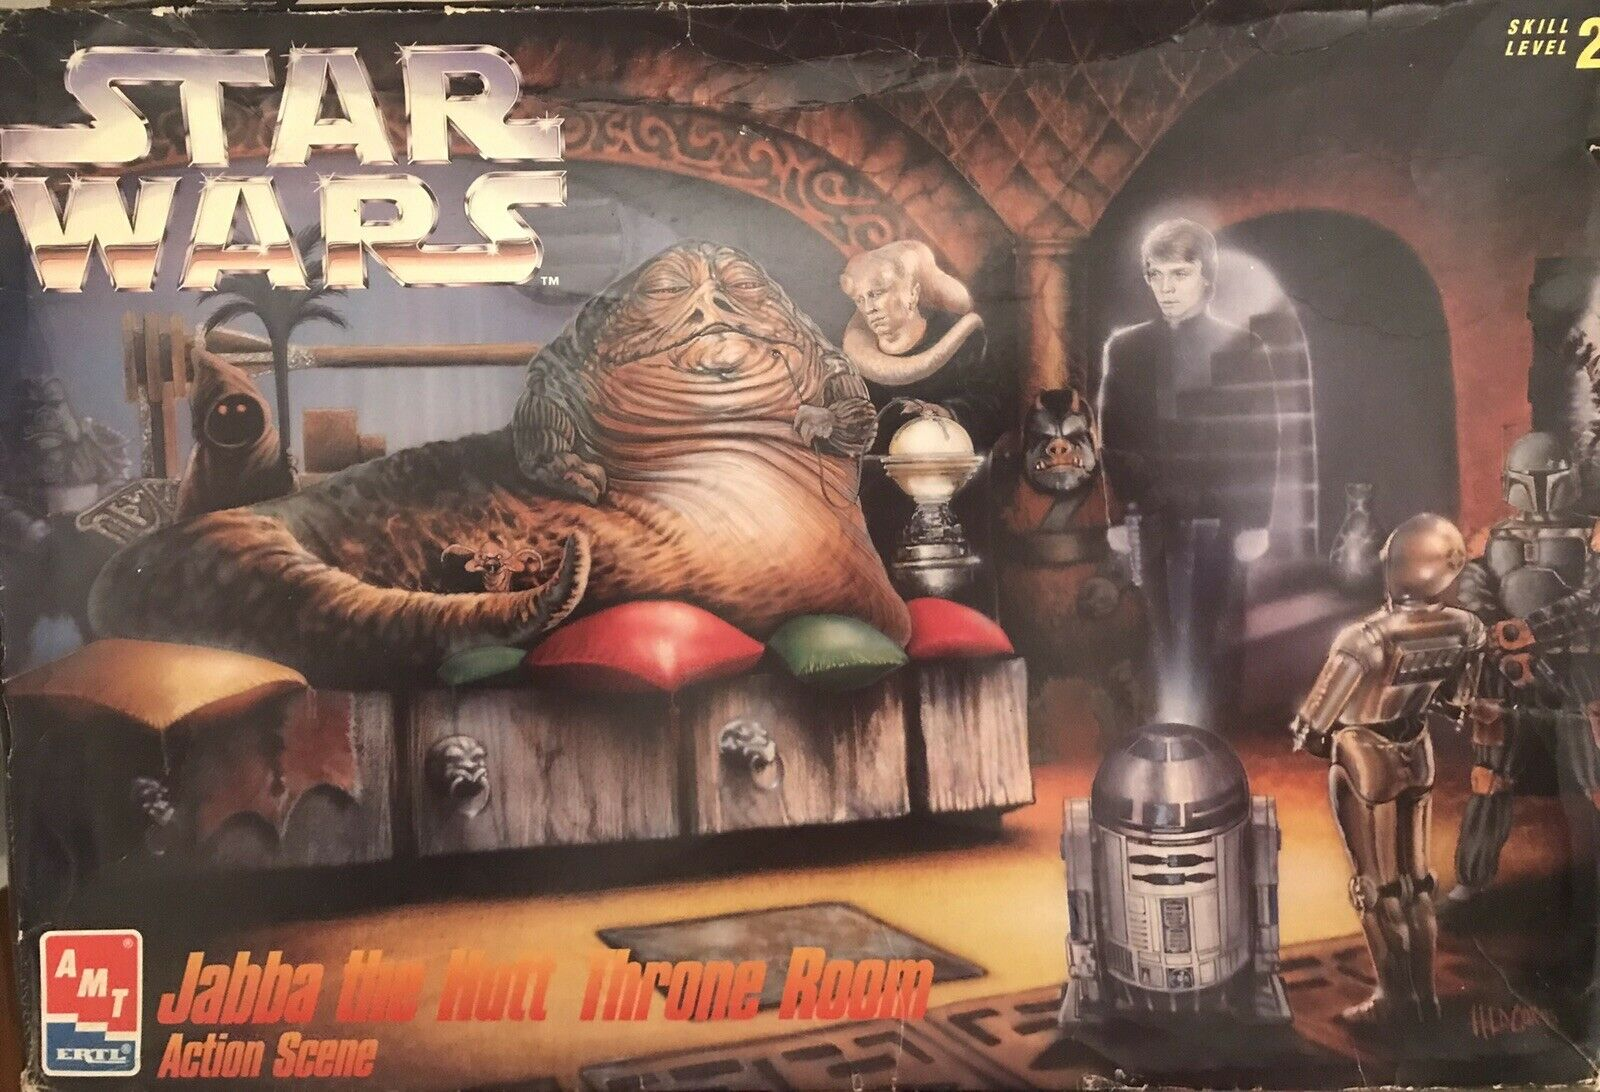 Star Wars - Jabba The Hutt Throne Room - Action scene